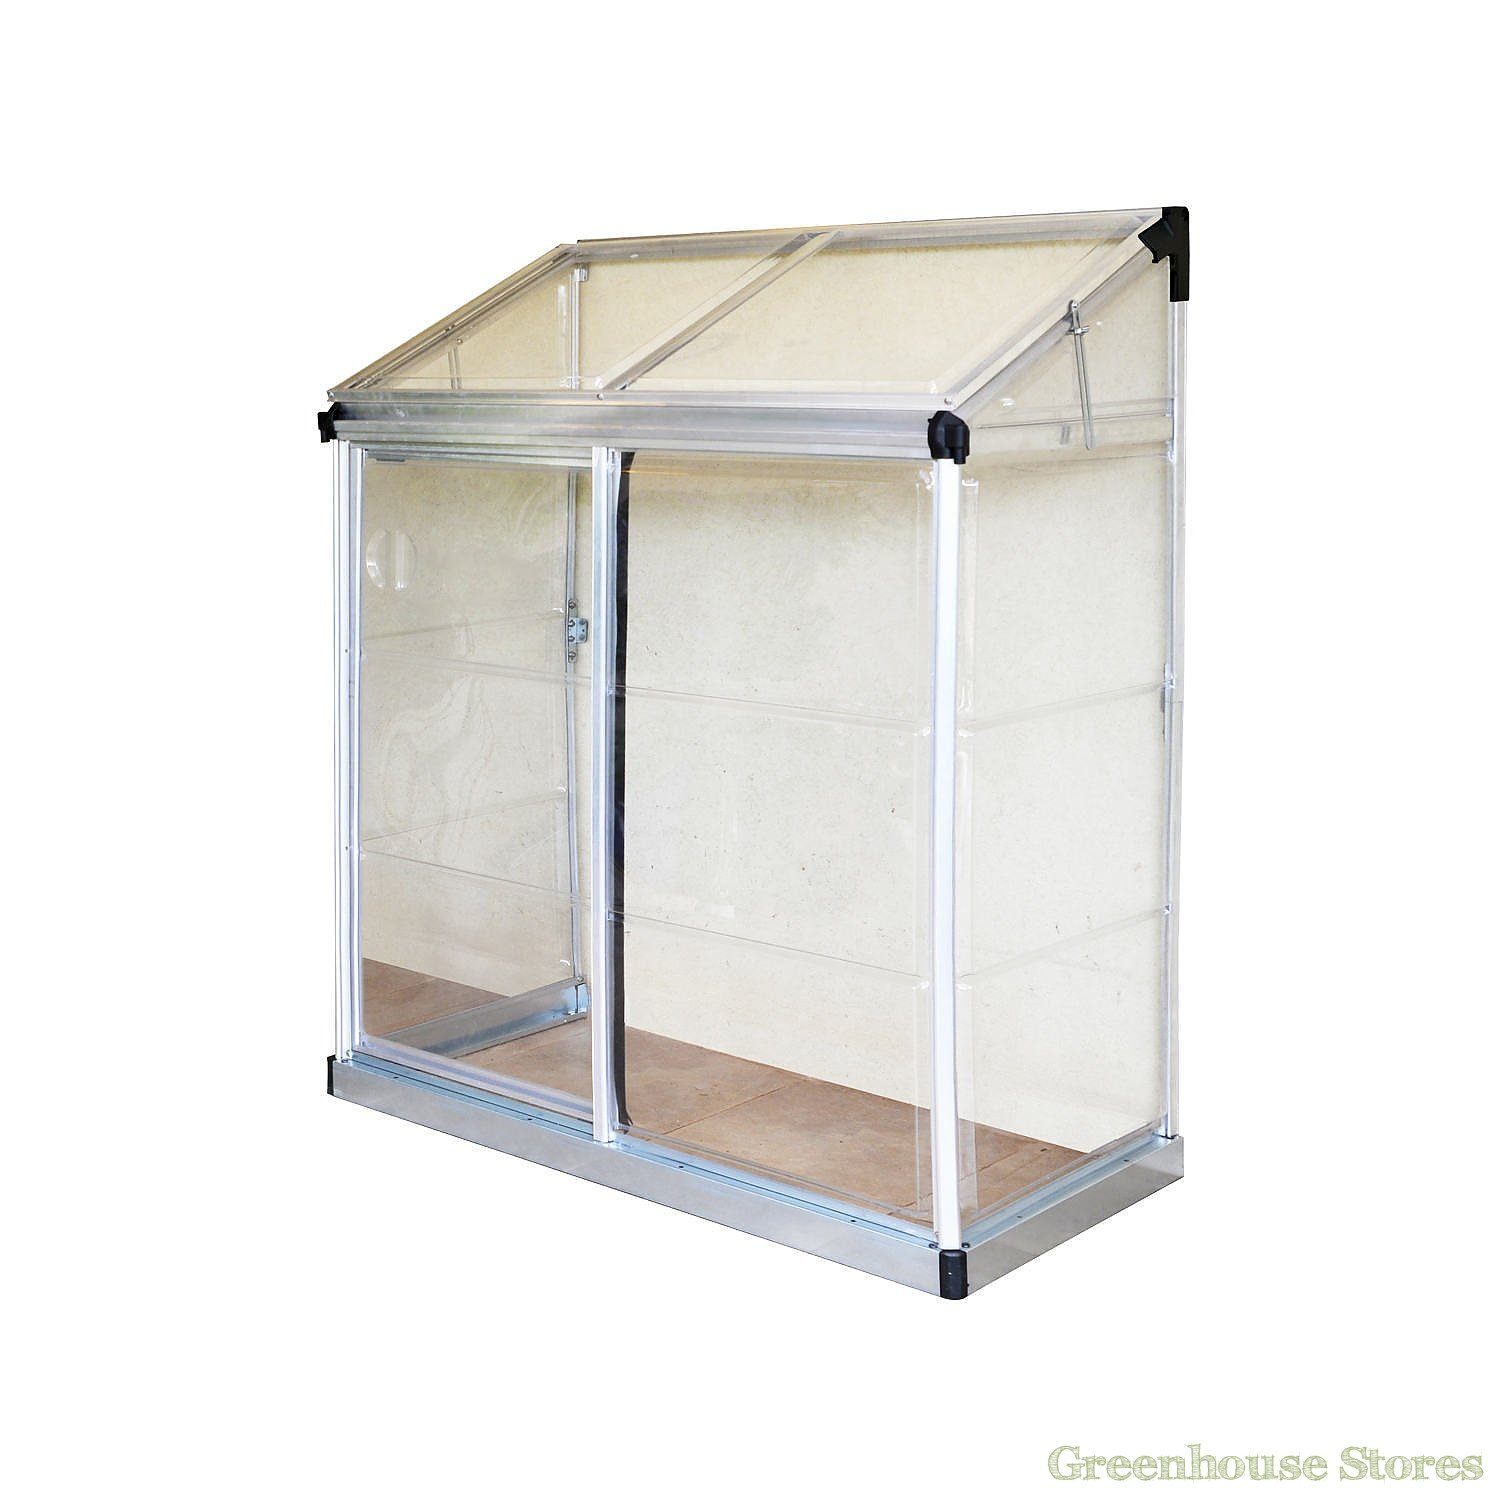 Palram Lean To Greenhouse Greenhouse Stores